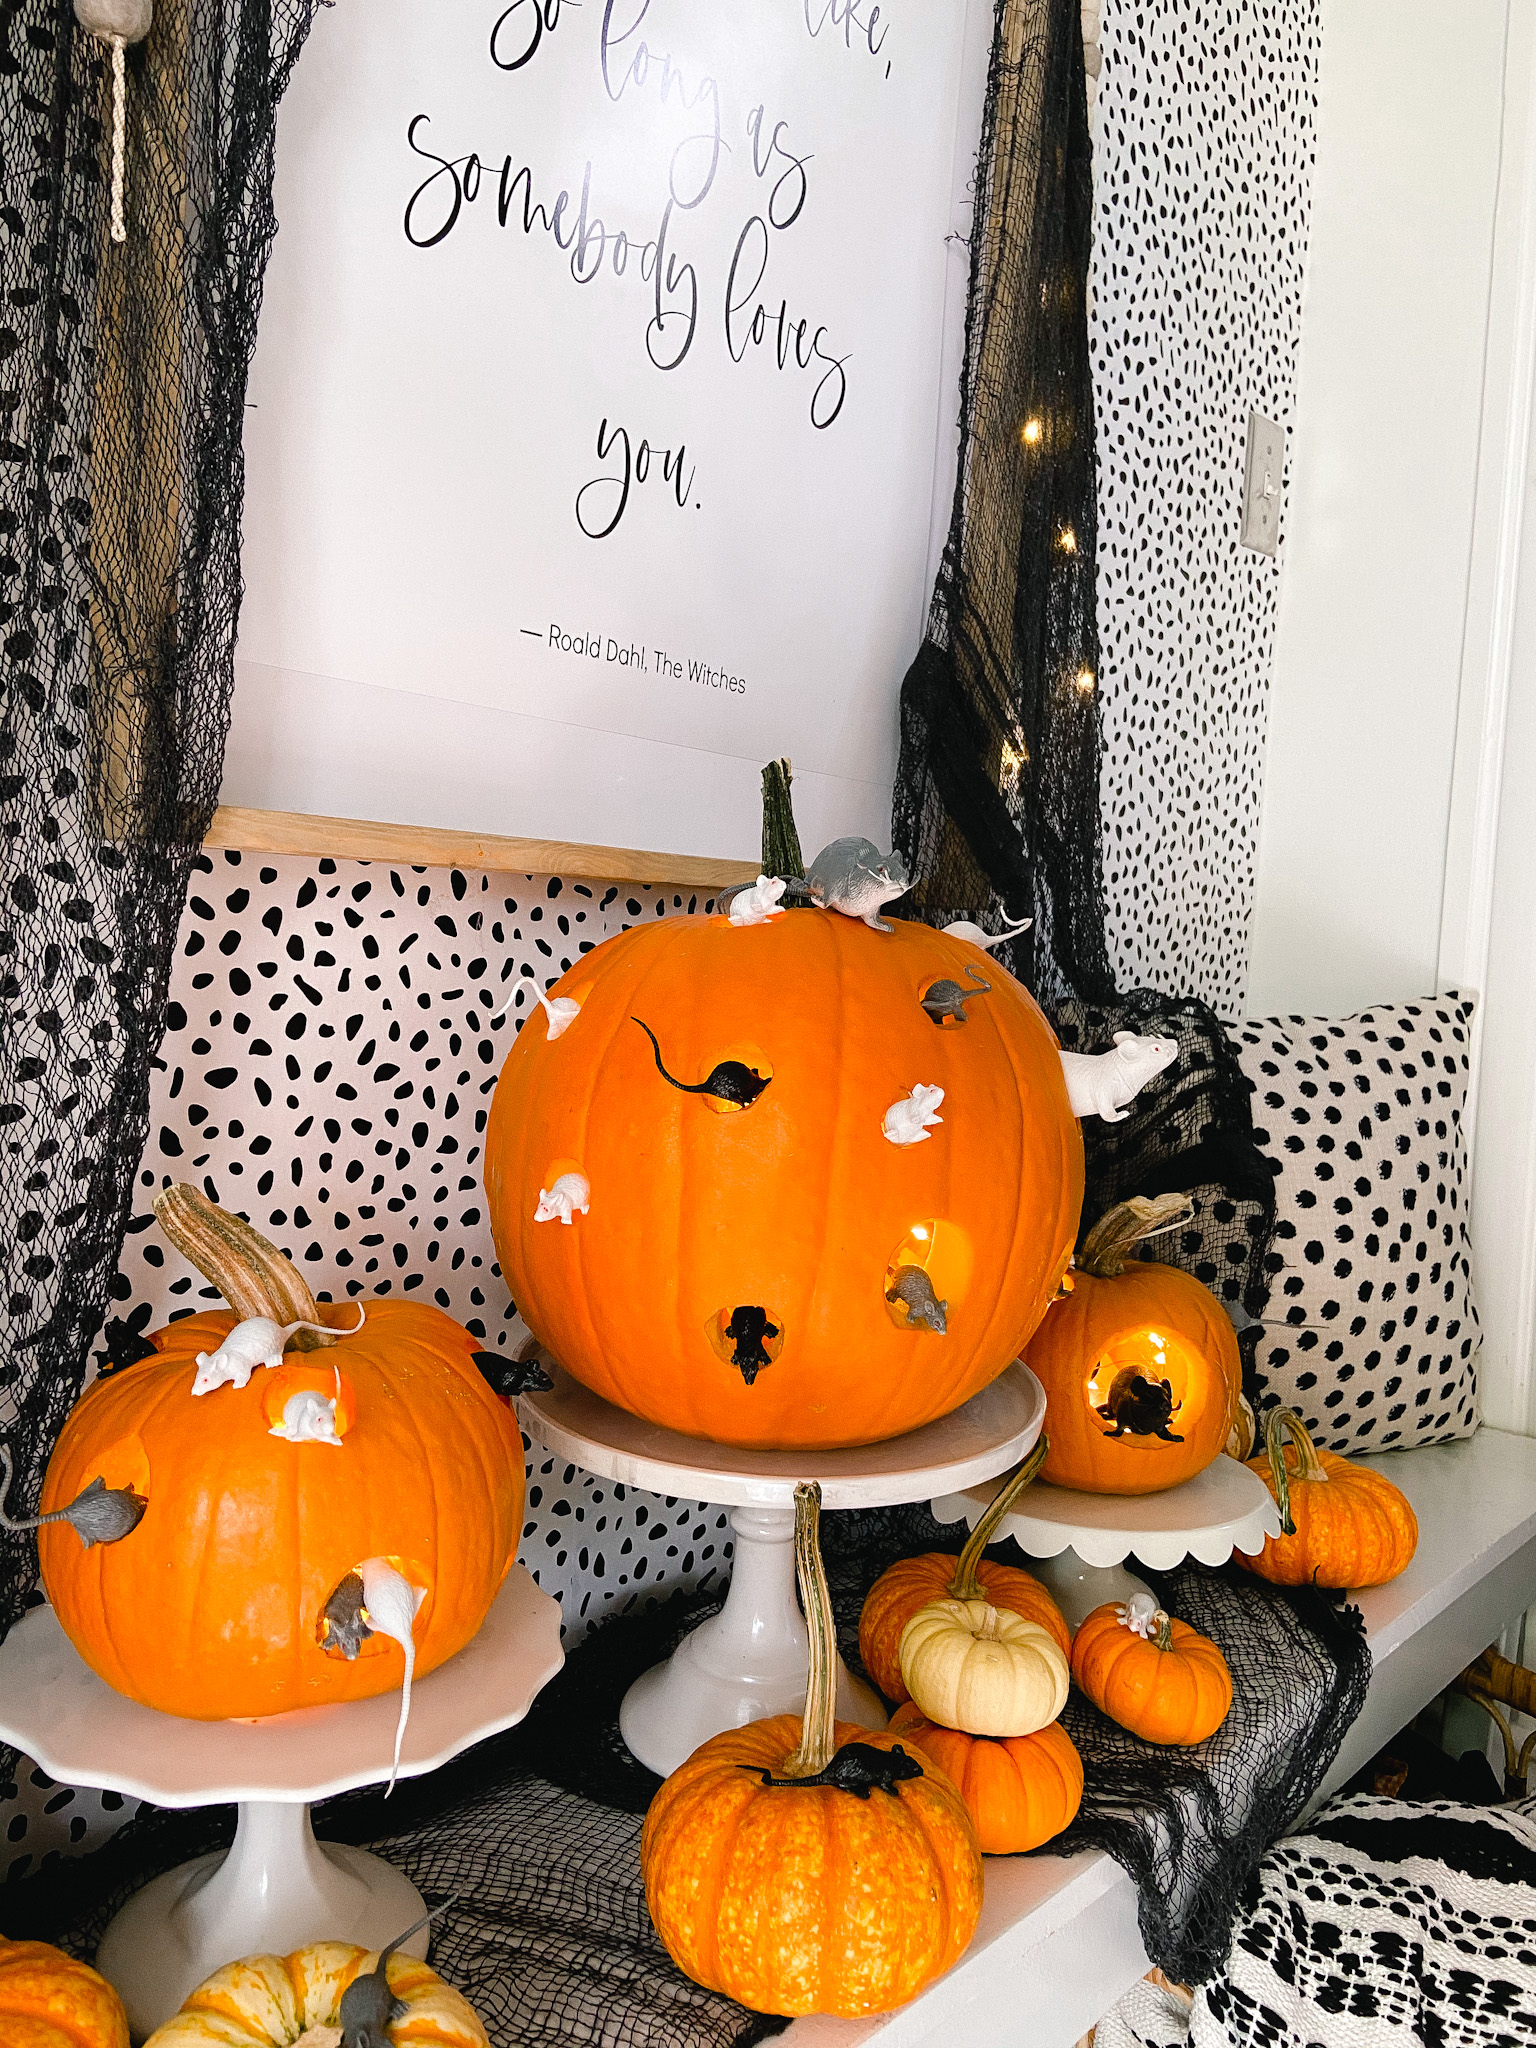 DIY The Witches Mice Pumpkins and Free Printable! Celebrate the new Ronald Dahl movie - The Witches by making Mice Pumpkins and printing out the inspiring quote from the movie.